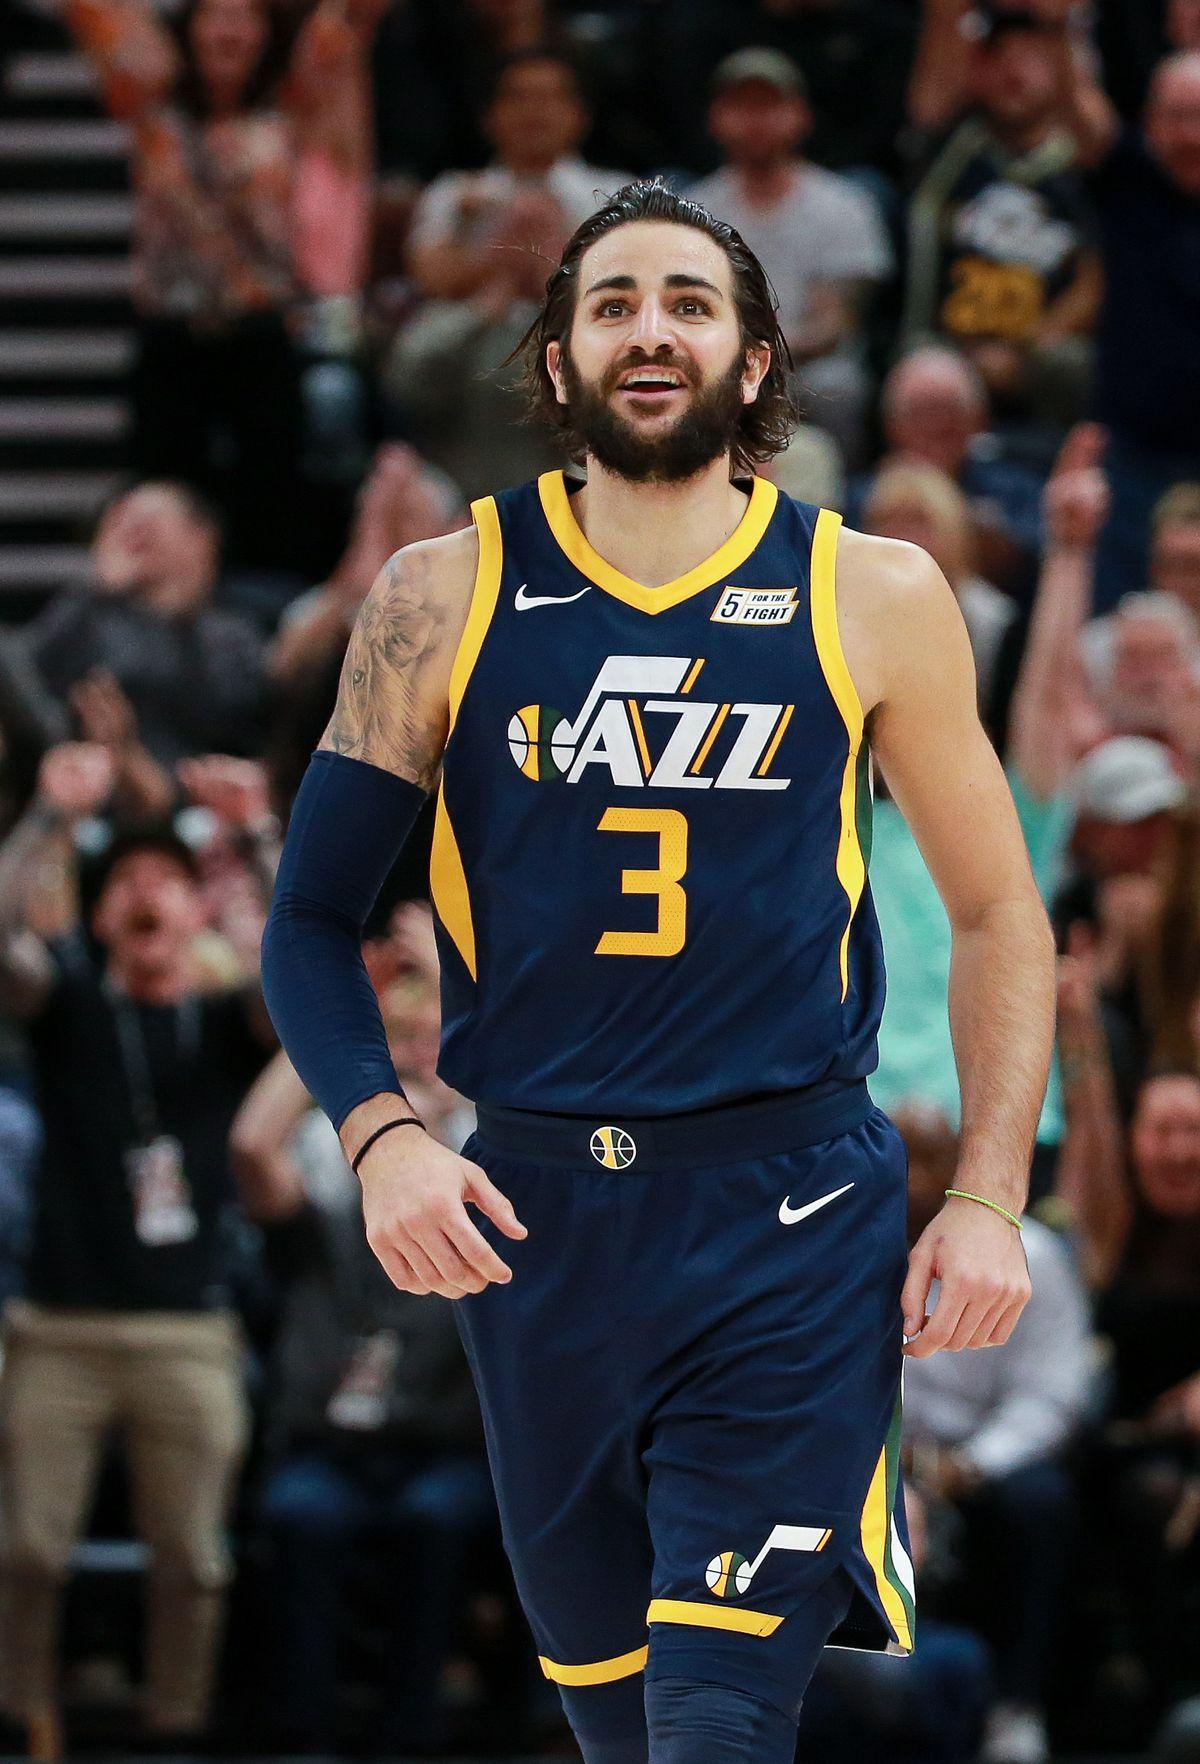 f078256c9f5 The Real Ricky Rubio Is Finally Ready to Stand Up - The Ringer